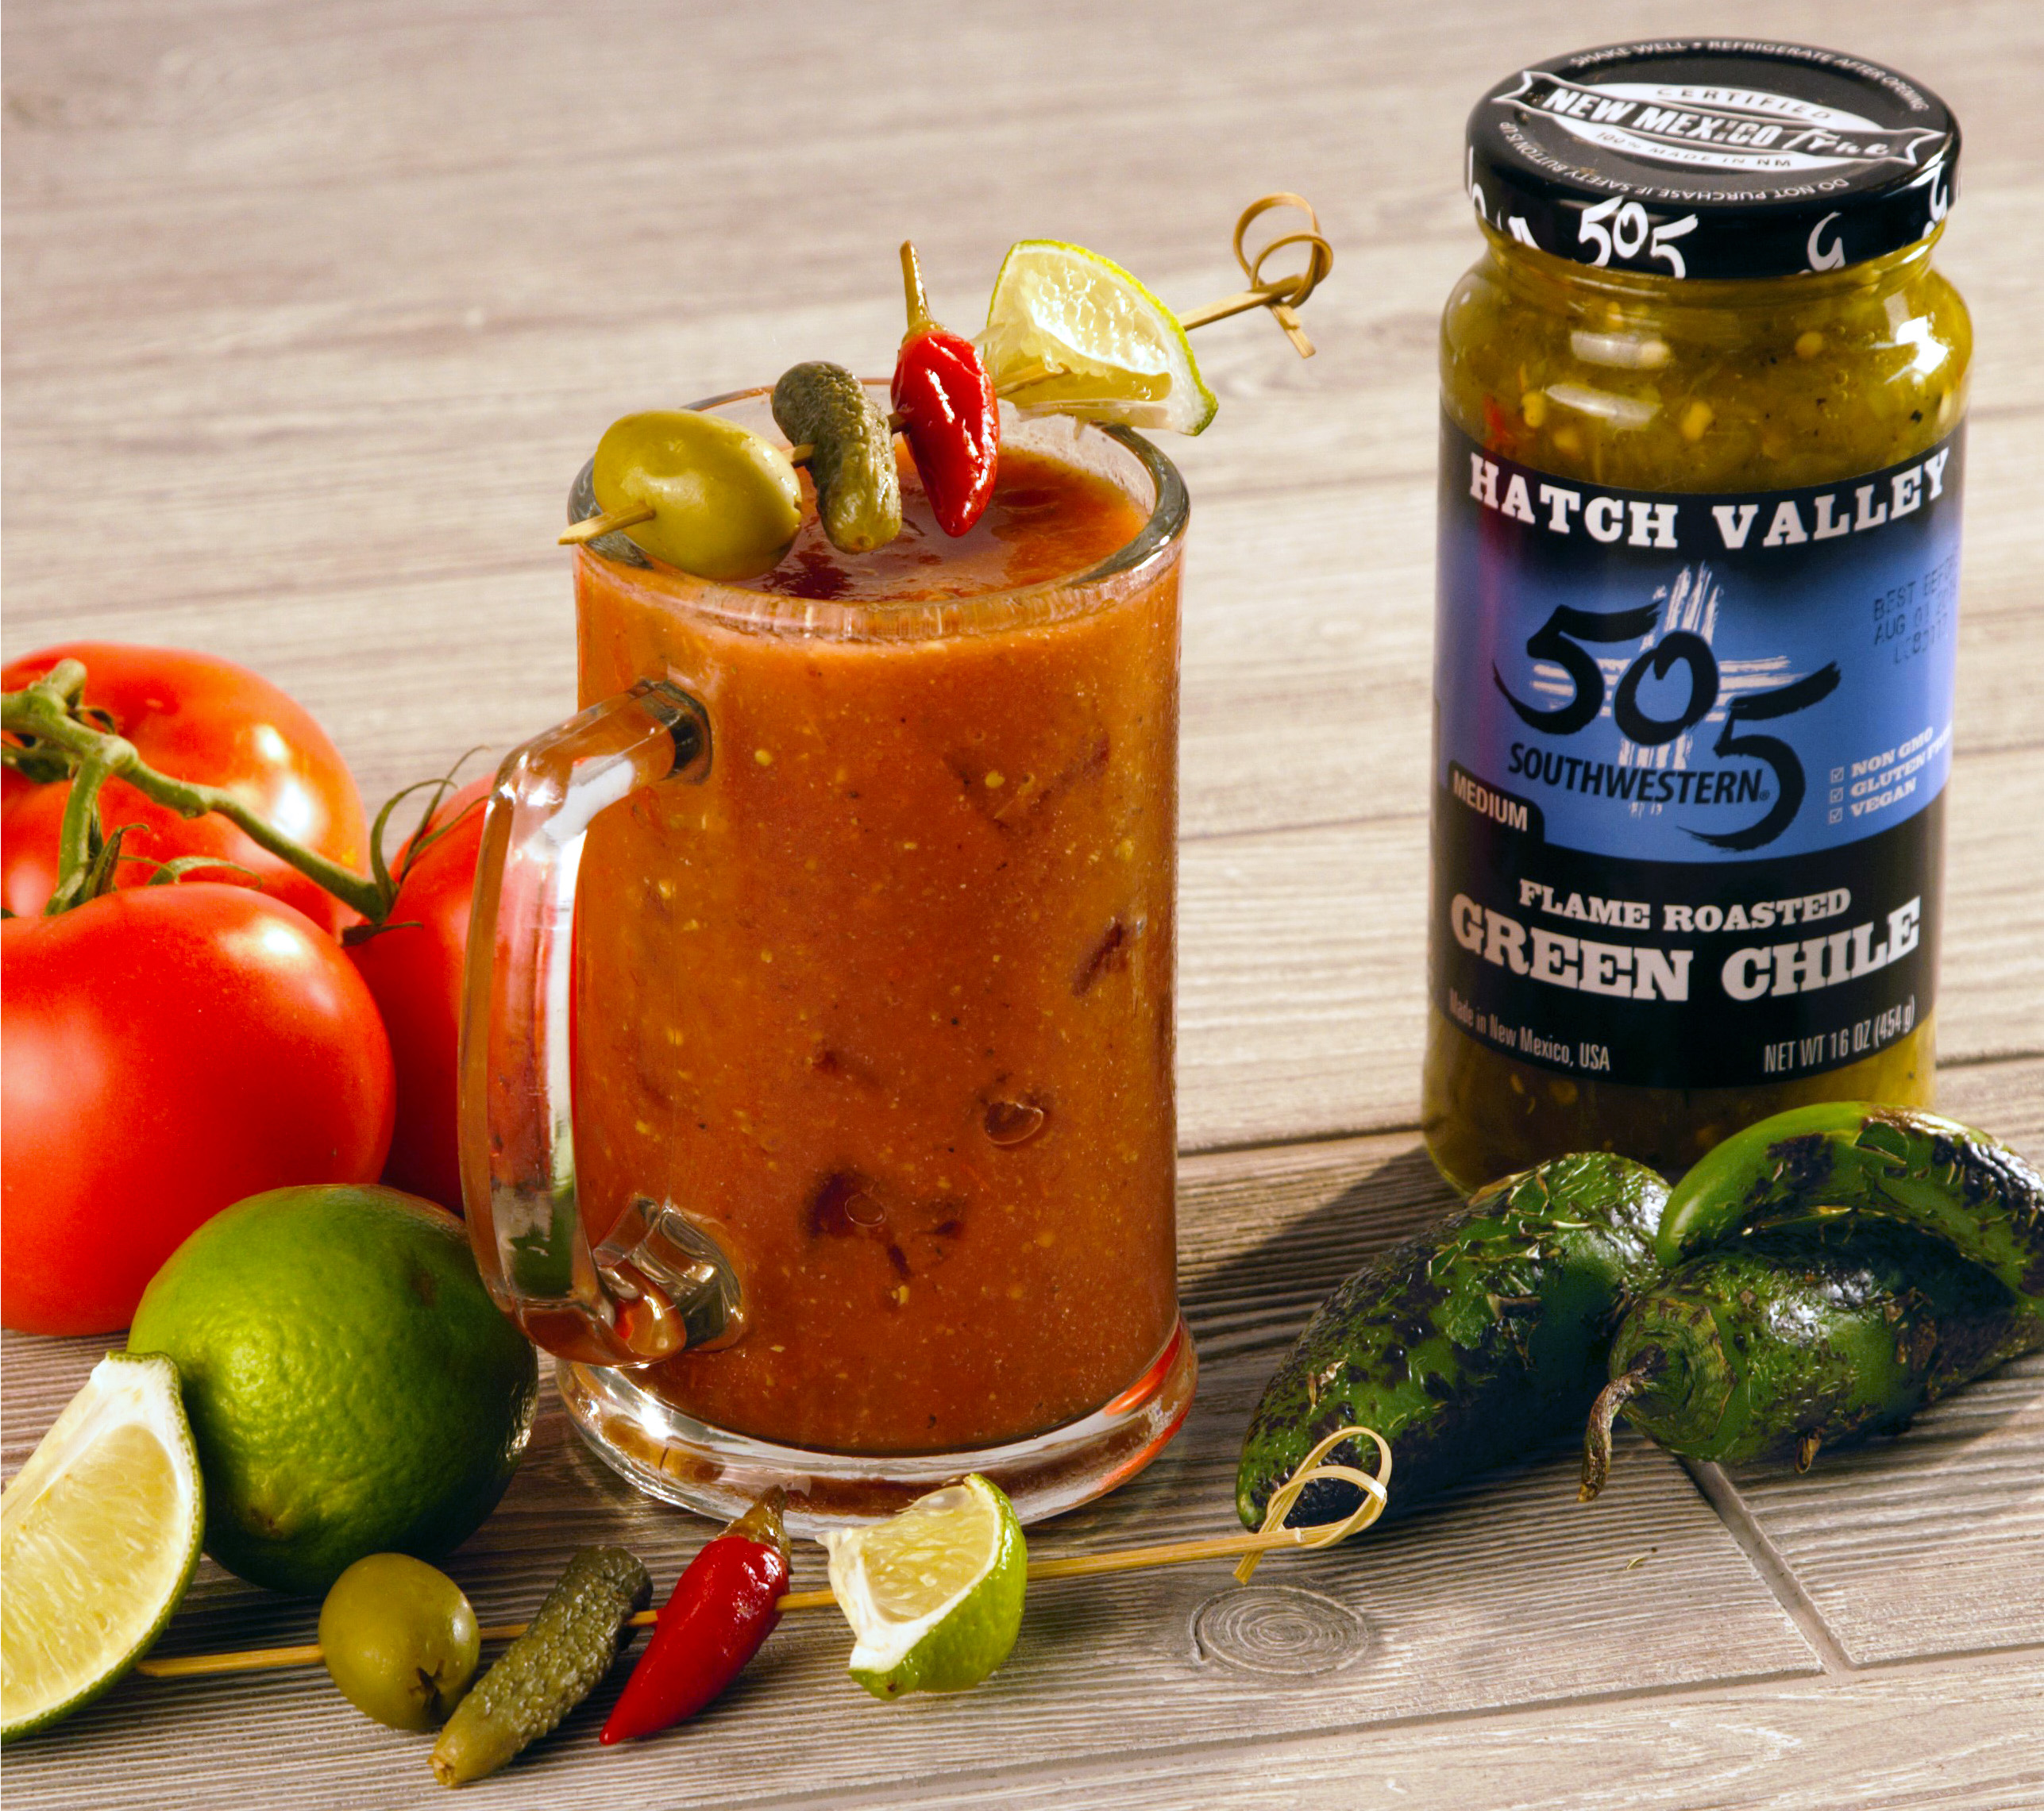 Southwester Bloody Mary Mix